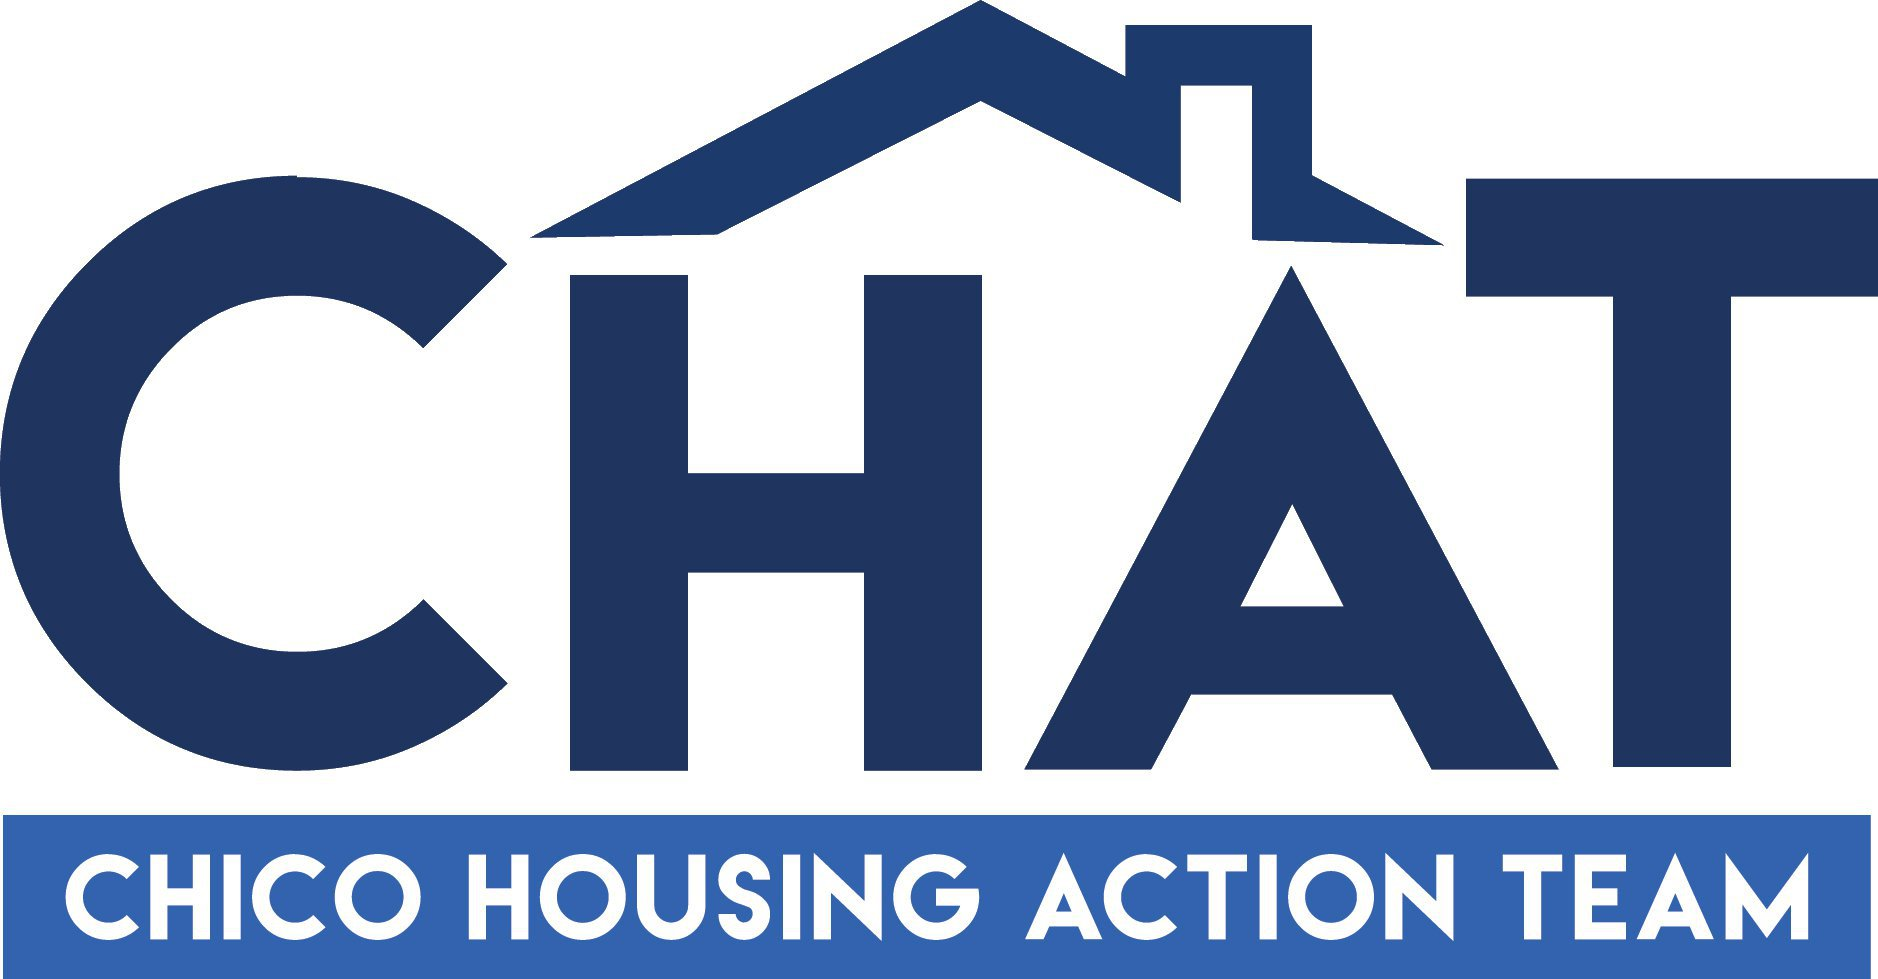 Chico Housing Action Team